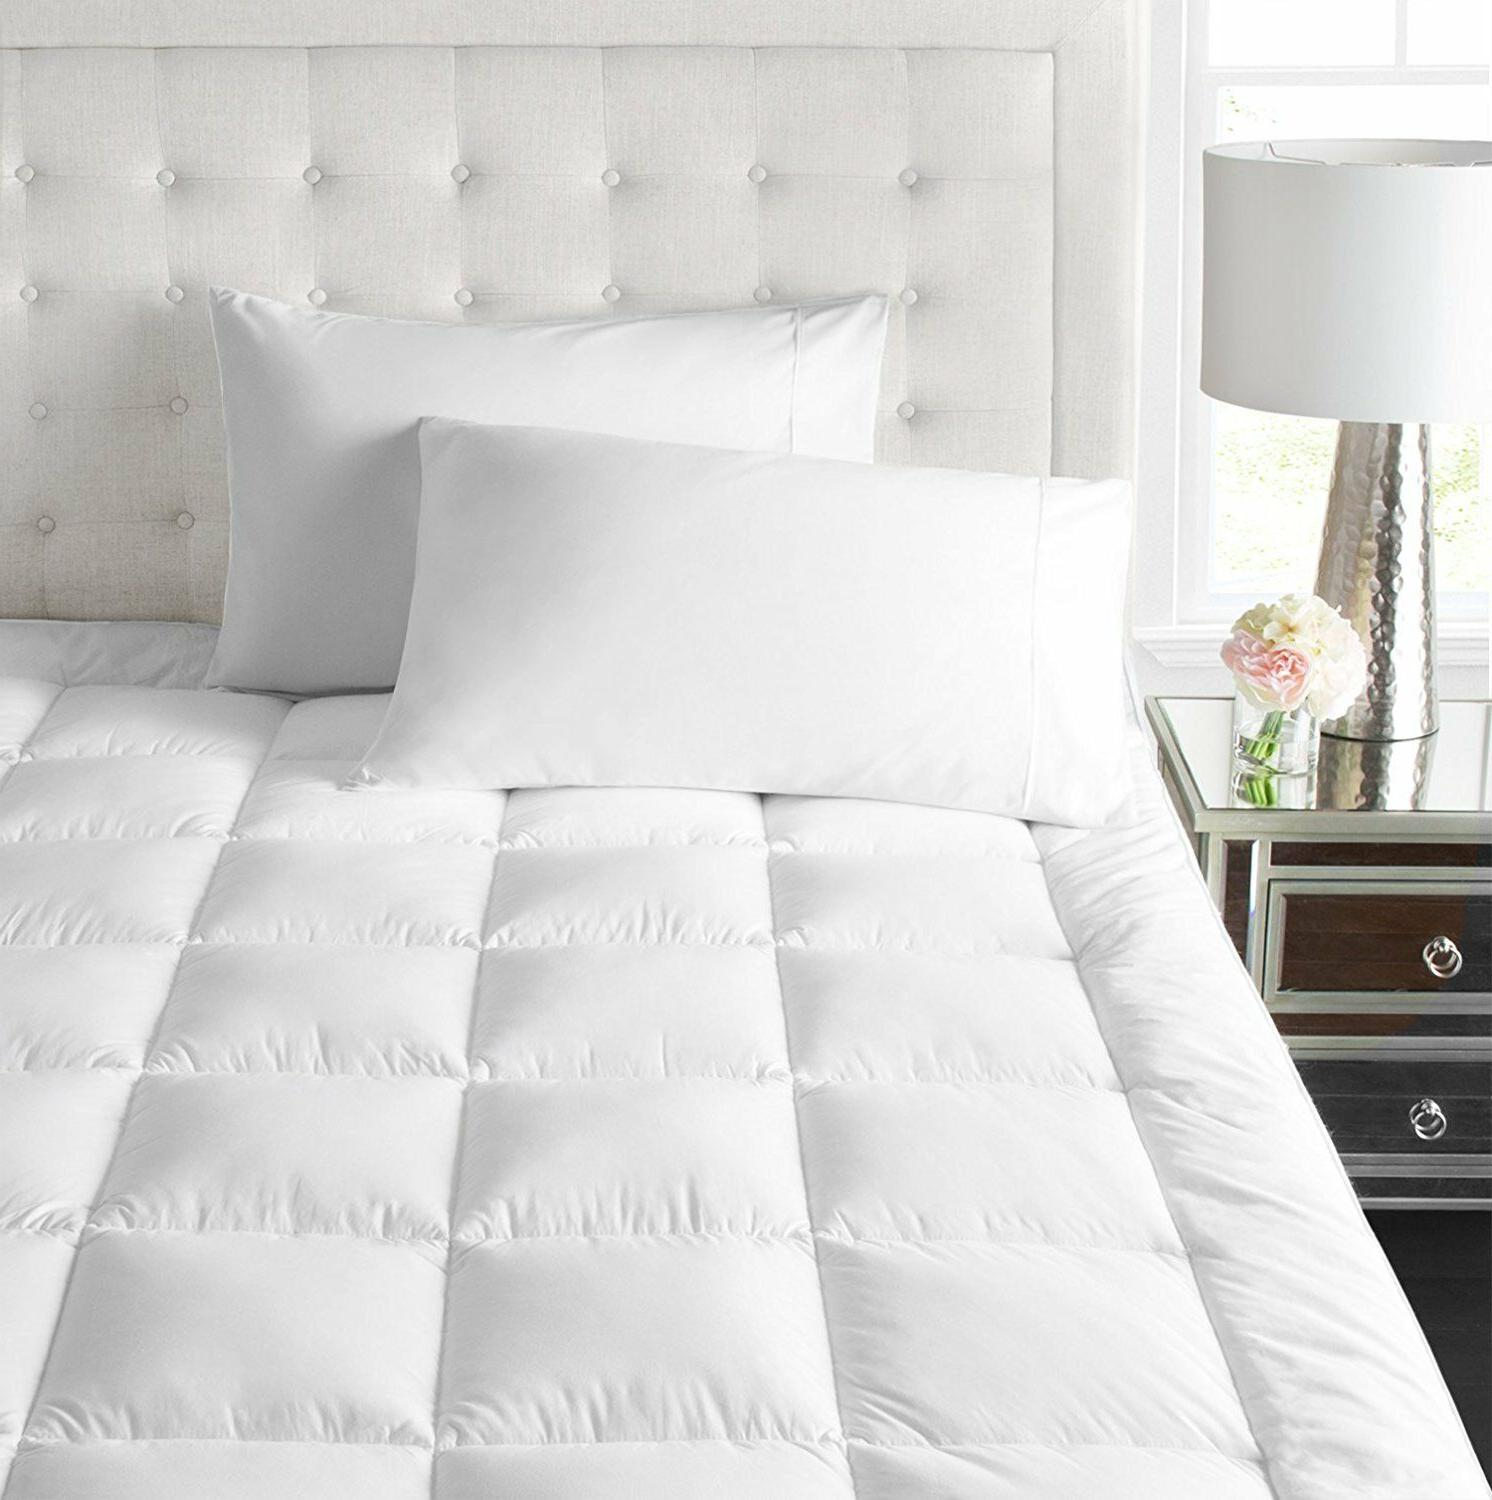 Bed topper mattress down alternative feather bed bed pad bed